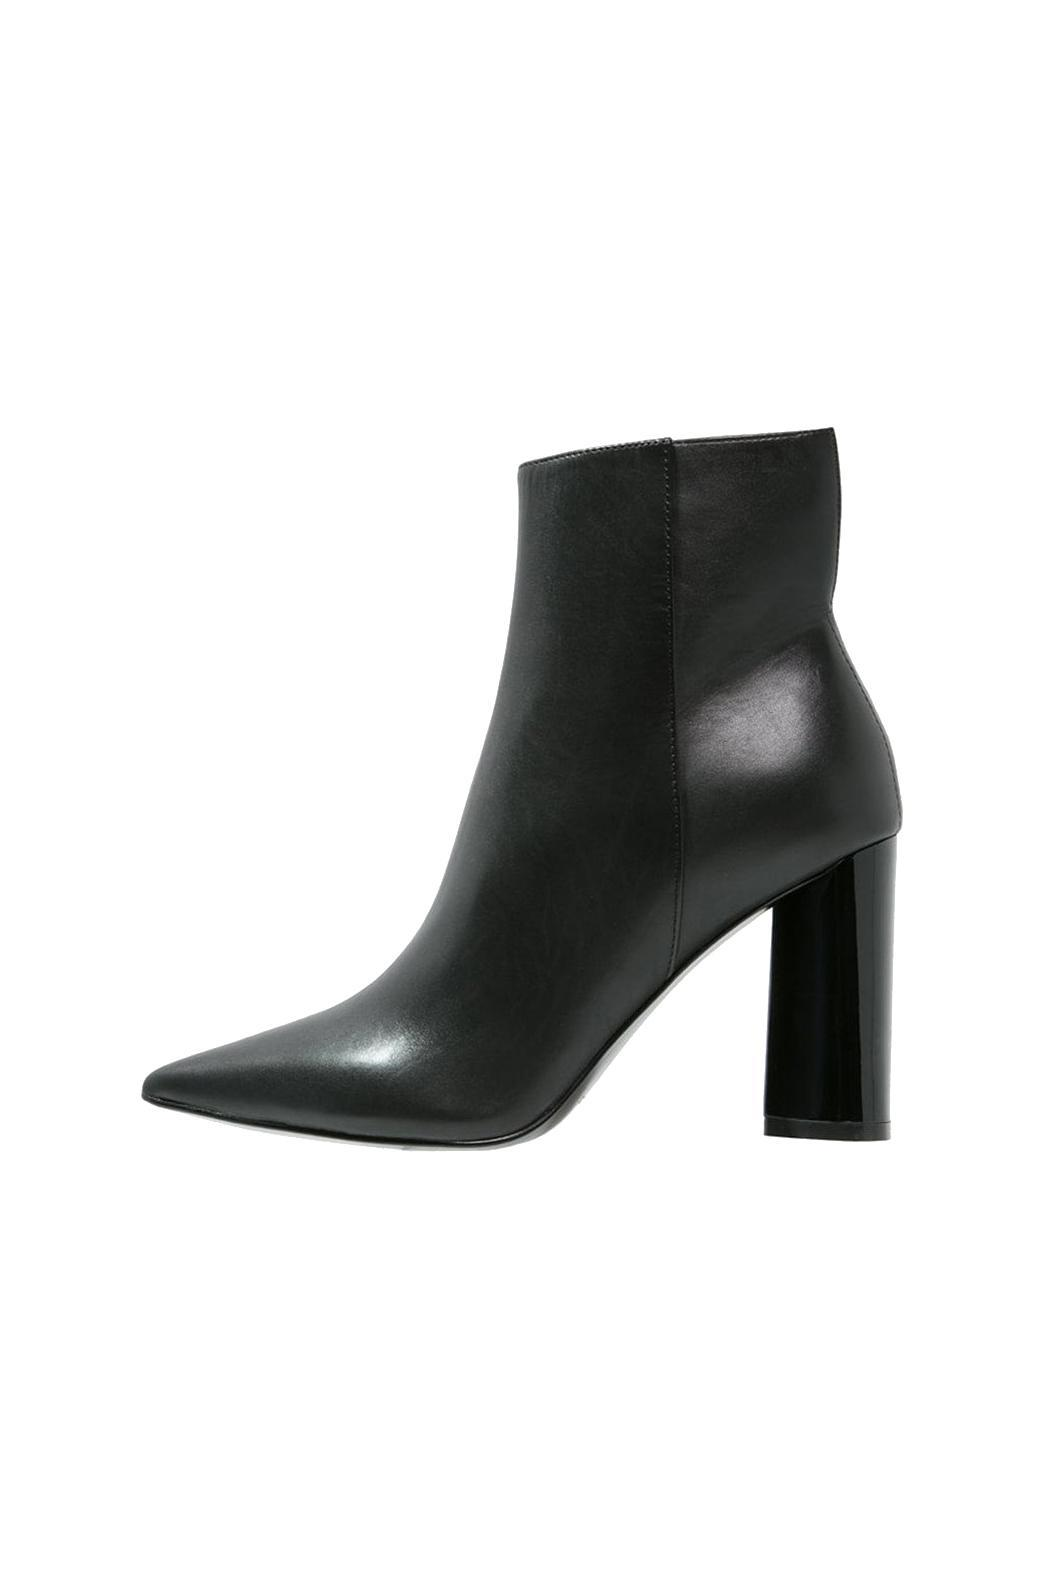 5361104dc340 Kendall + Kylie Gemma Leather Boots from Montreal by Boutique TAG ...